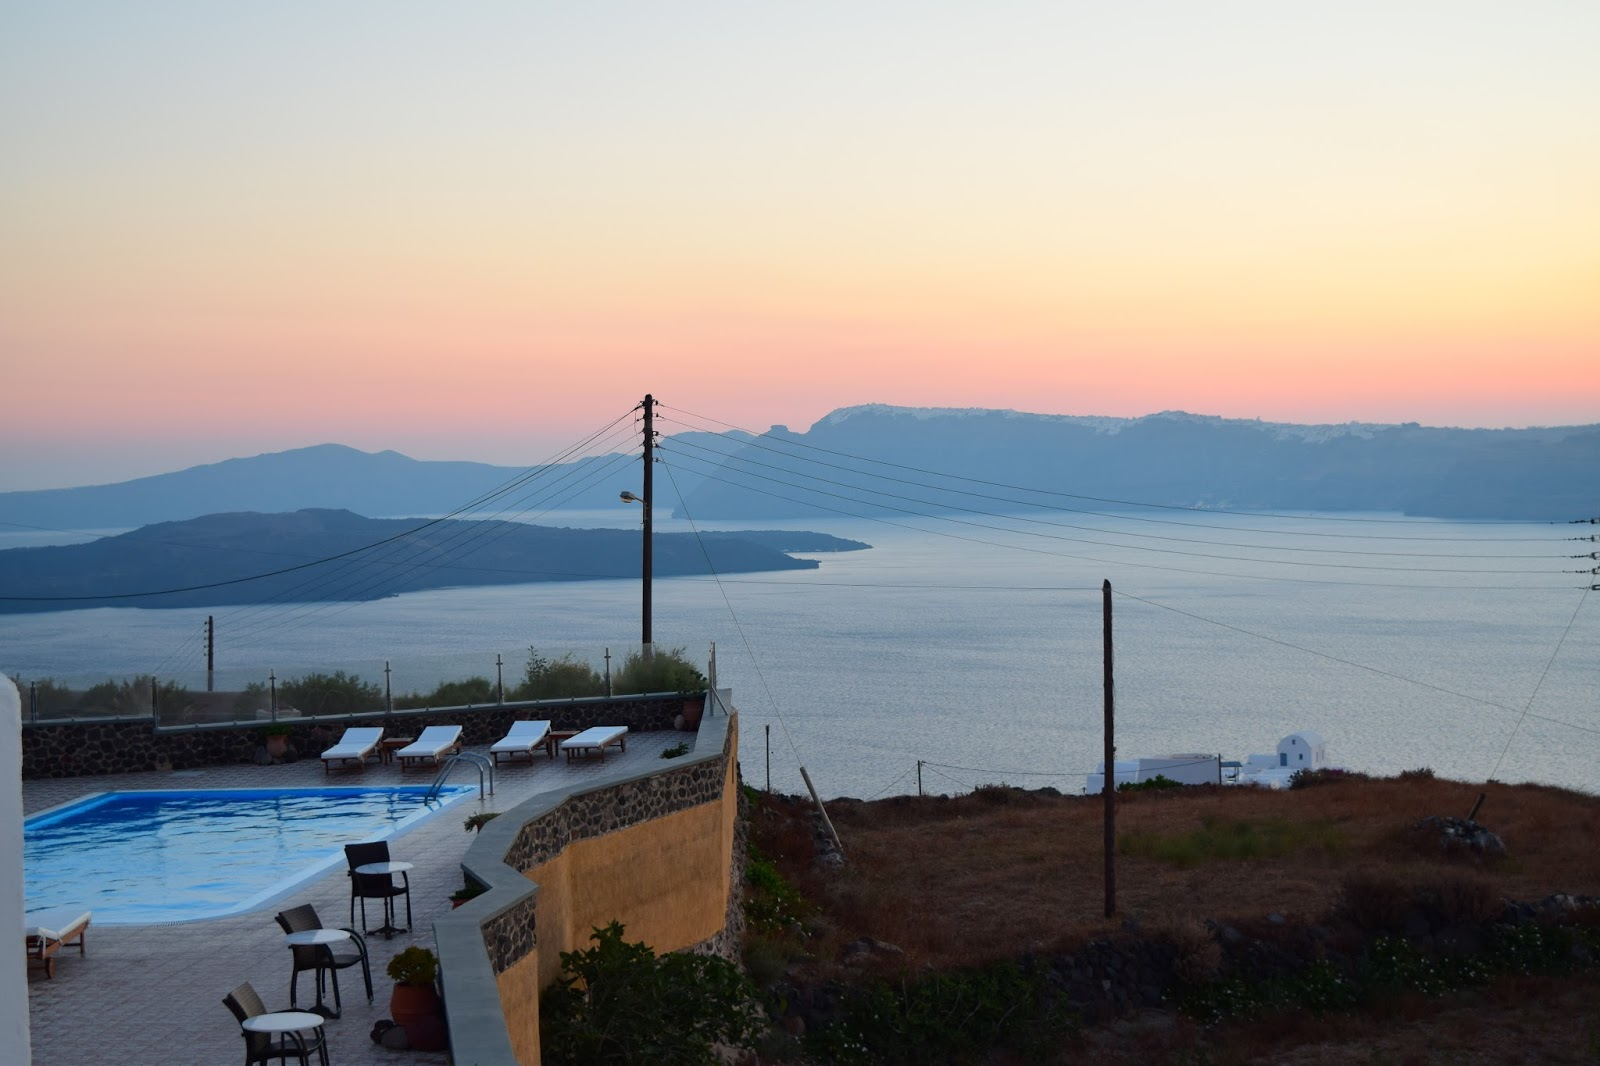 The Best Hotels In Santorini | Where To Stay in Santorini